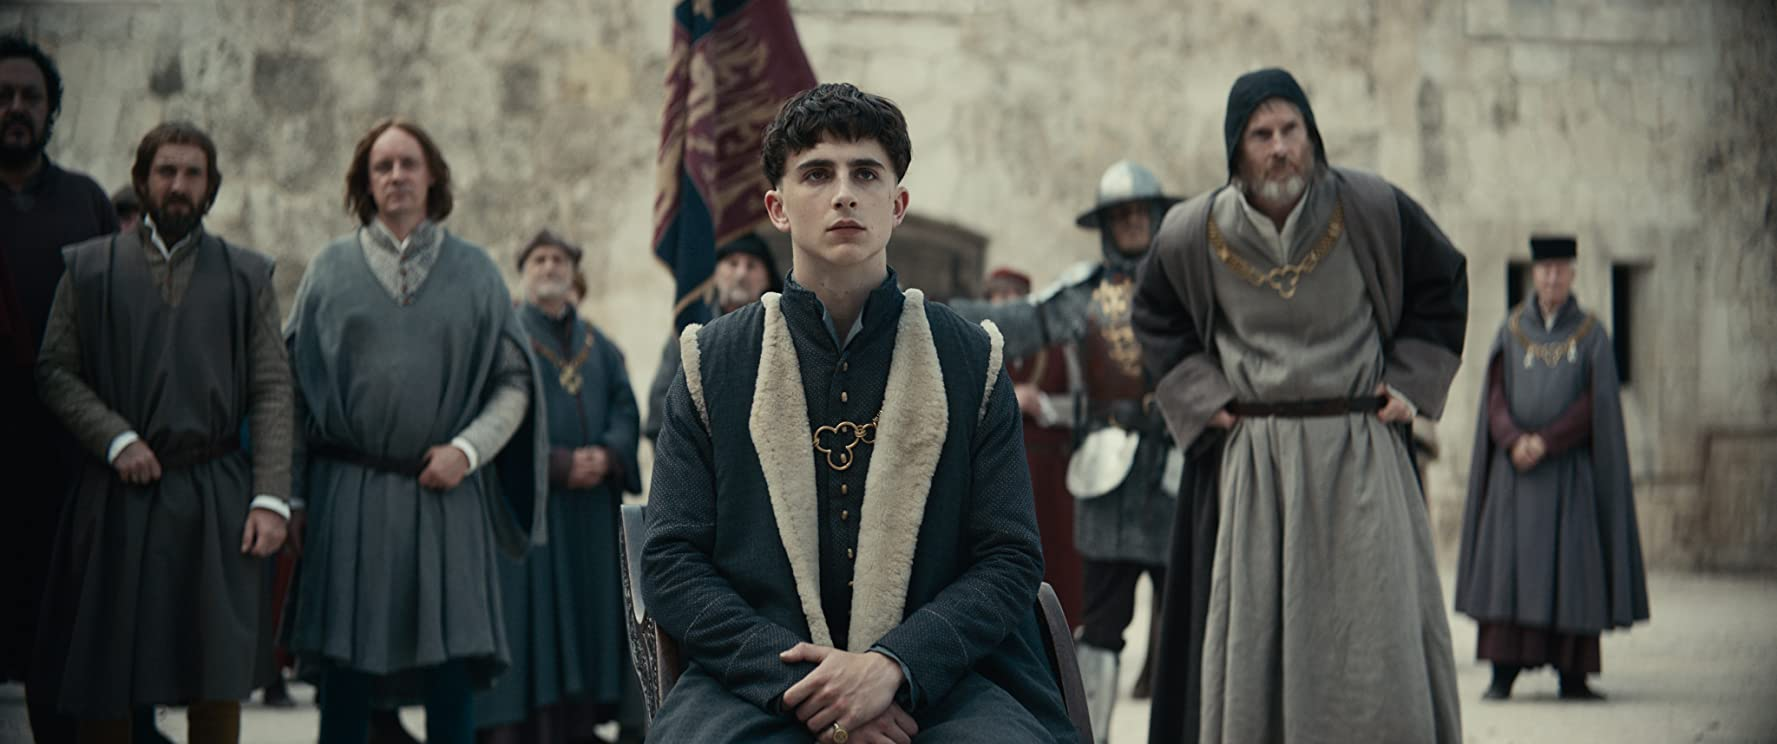 Sean Harris, Ivan Kaye, and Timothée Chalamet in The King (2019)